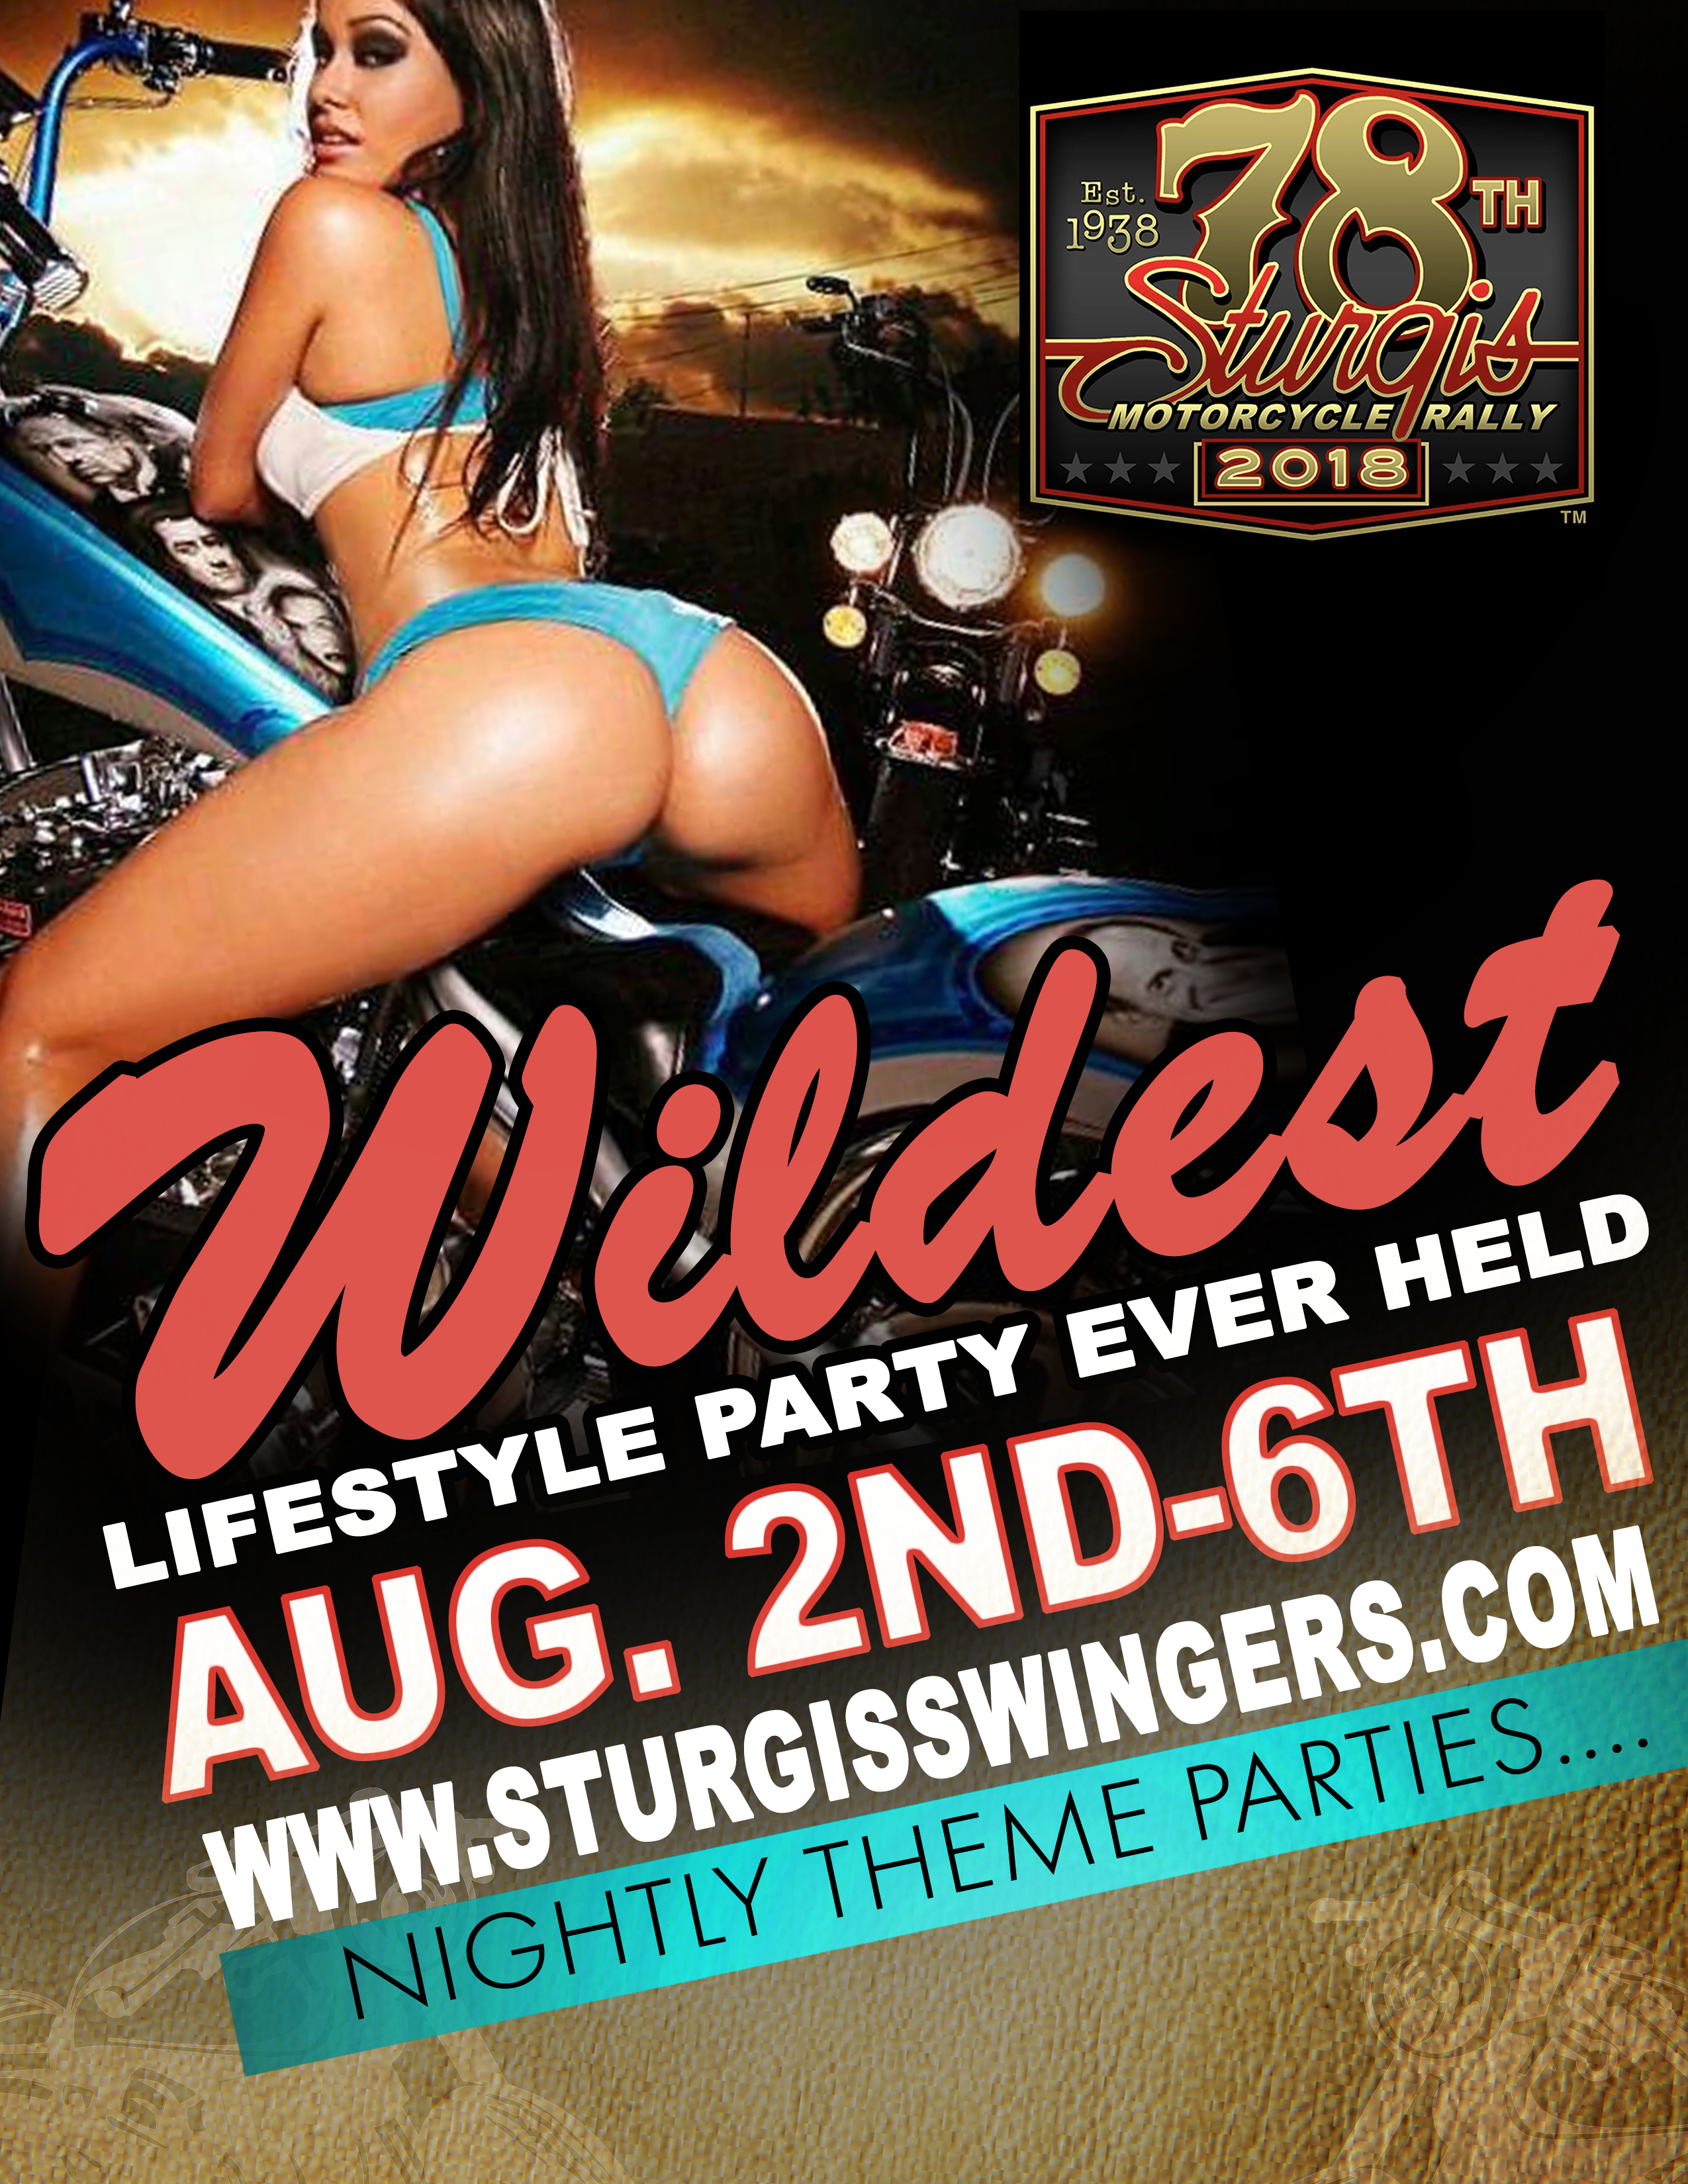 Sturgis swingers Sturgis Bike Rally from l Nudity Photo Gallery by Al Varland at